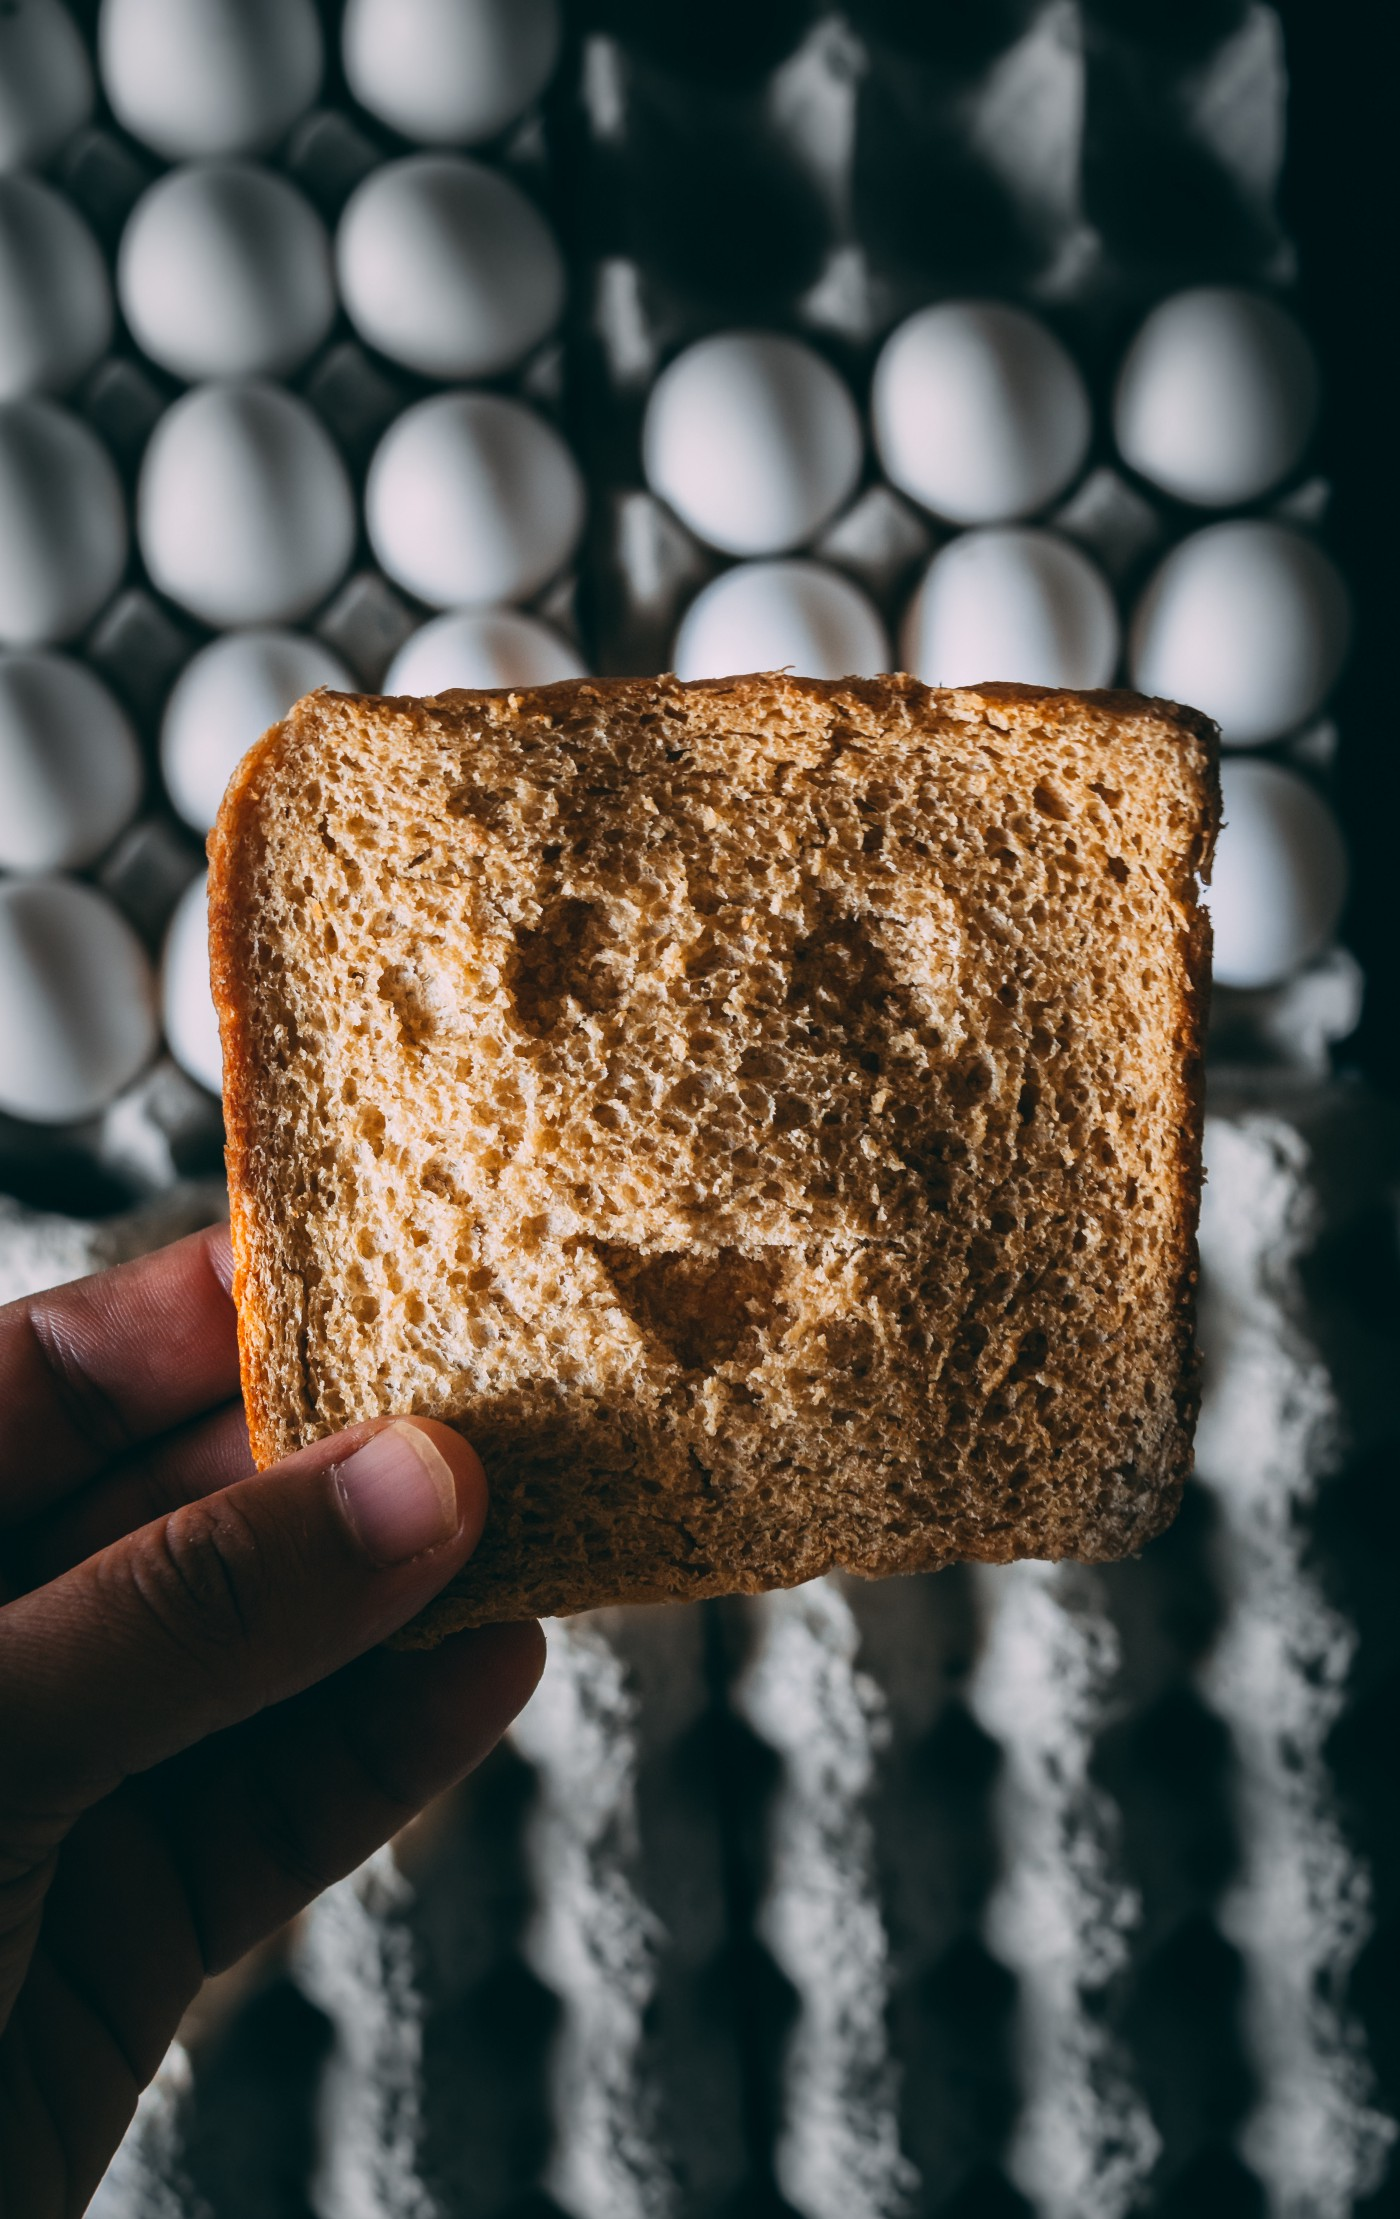 piece of toast with funny face carved into it